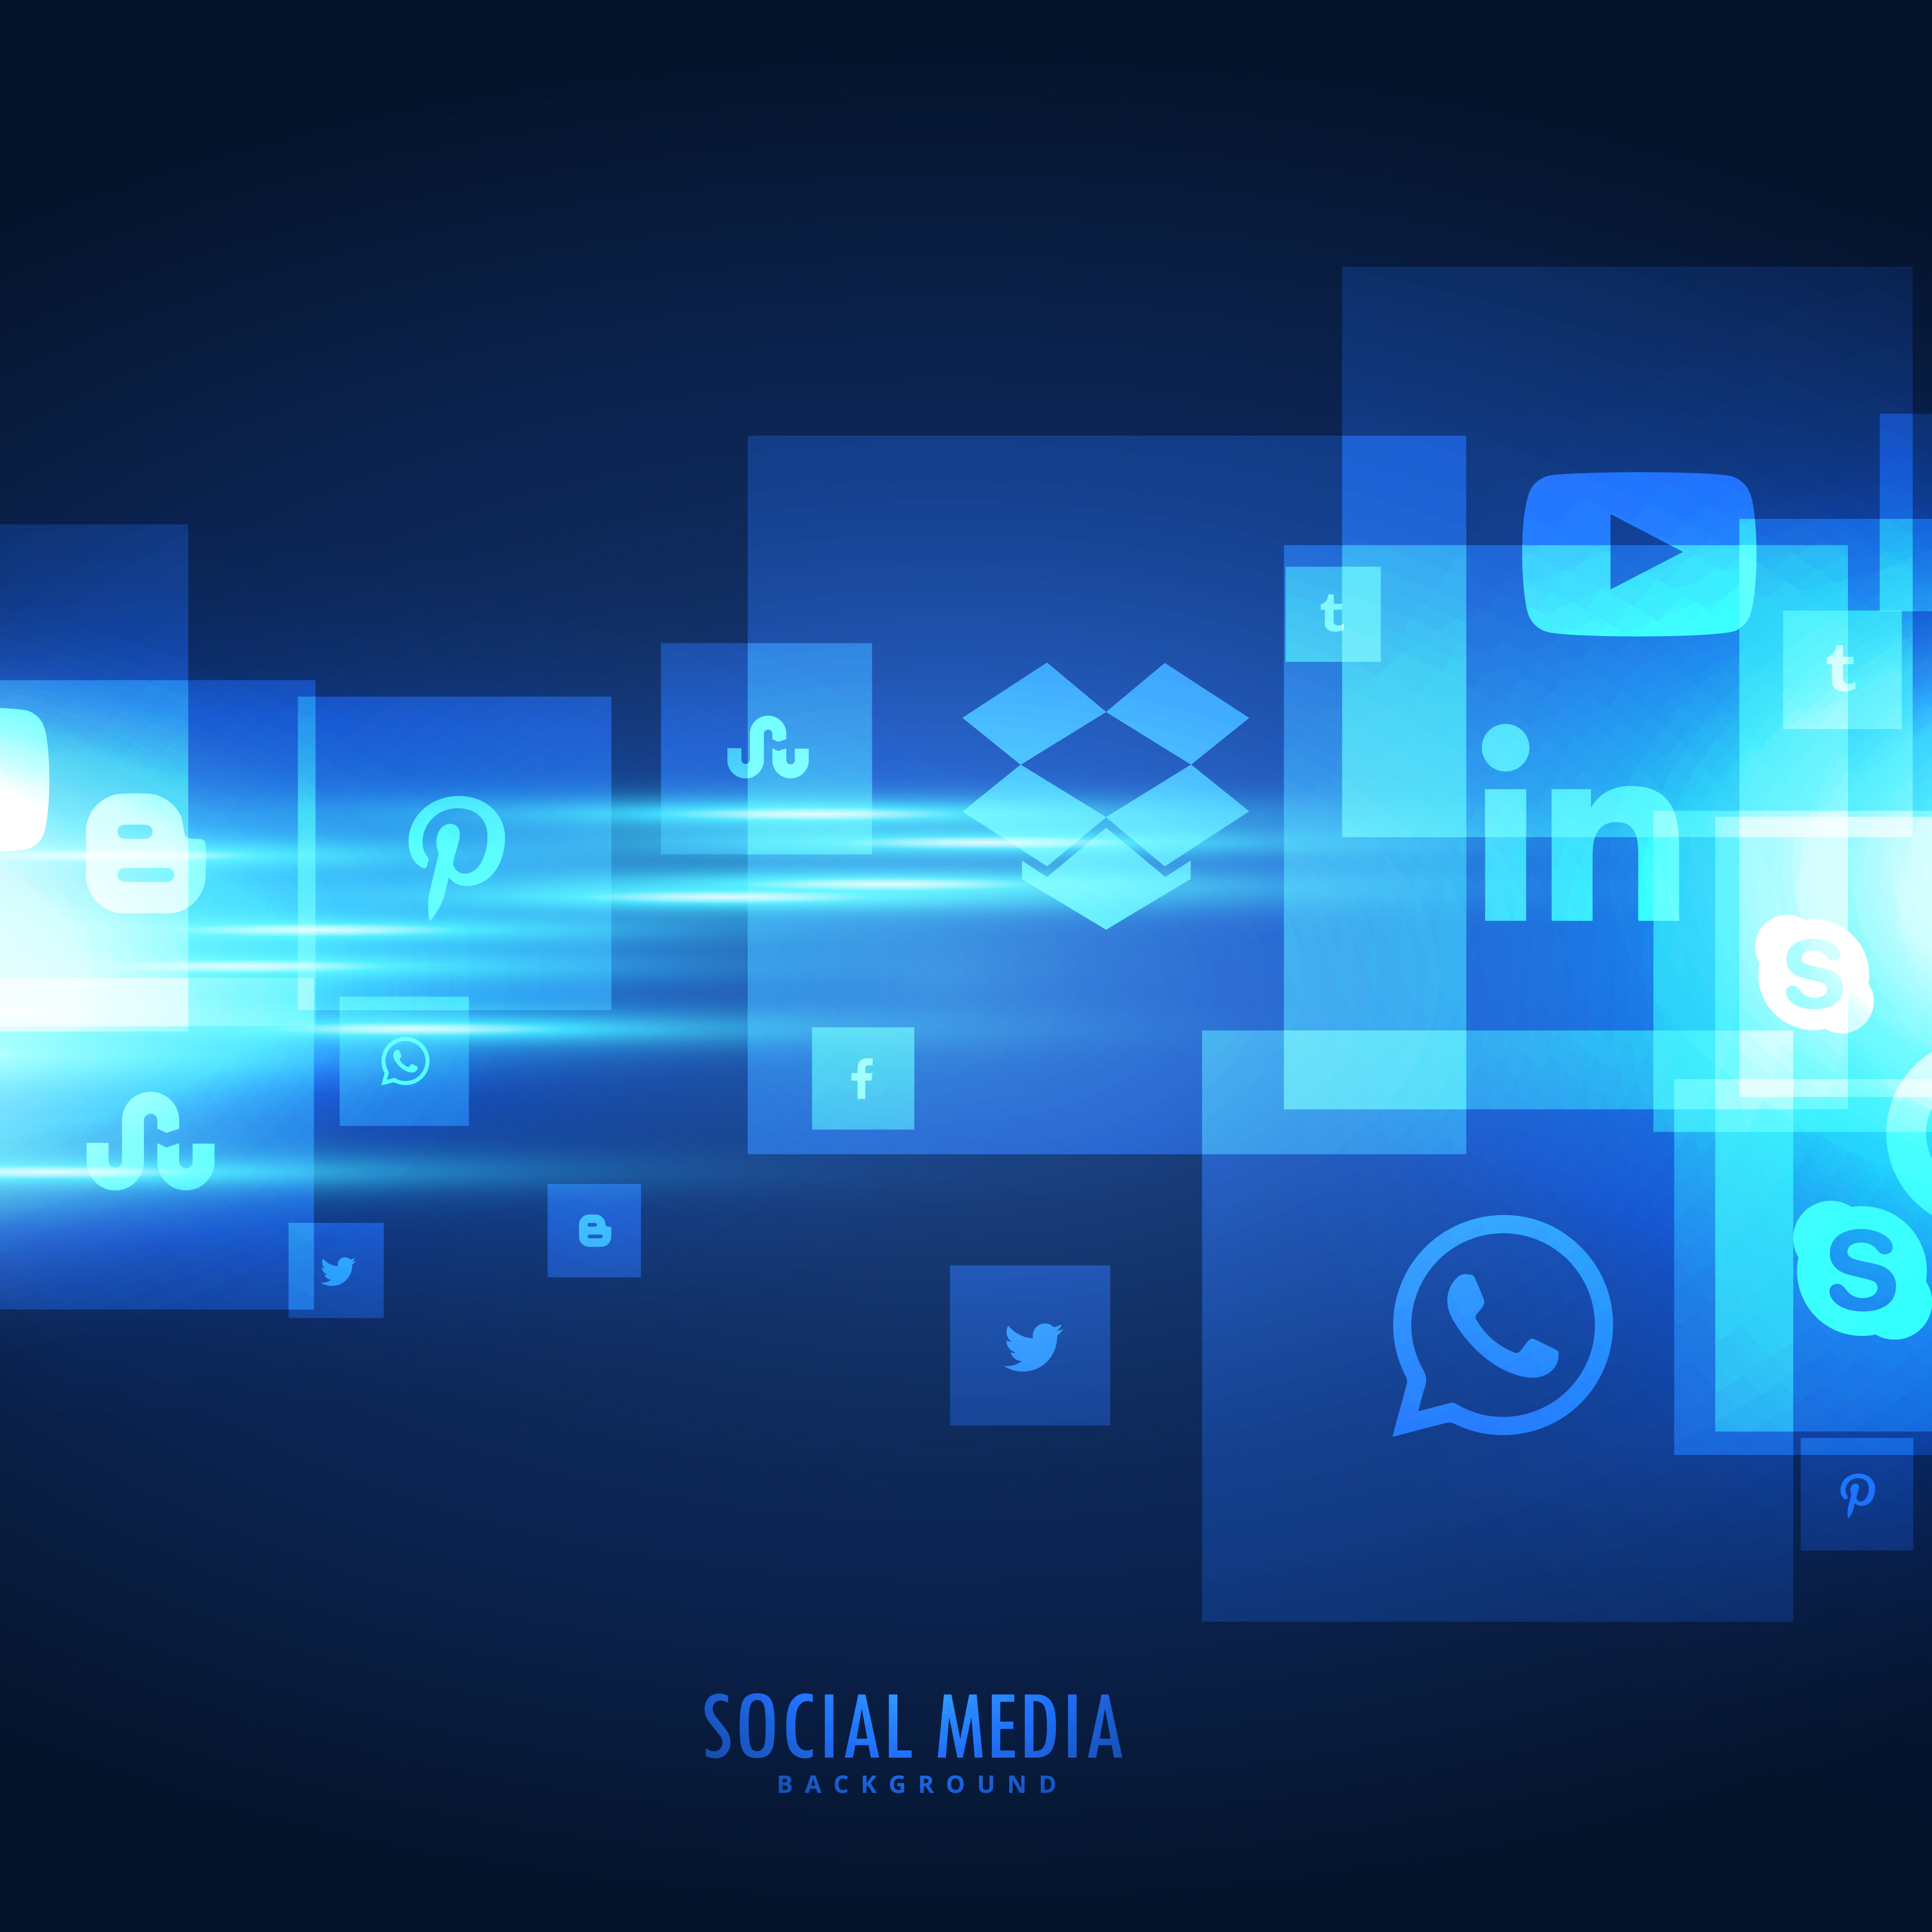 blue-social-media-icons-background-vector.jpg